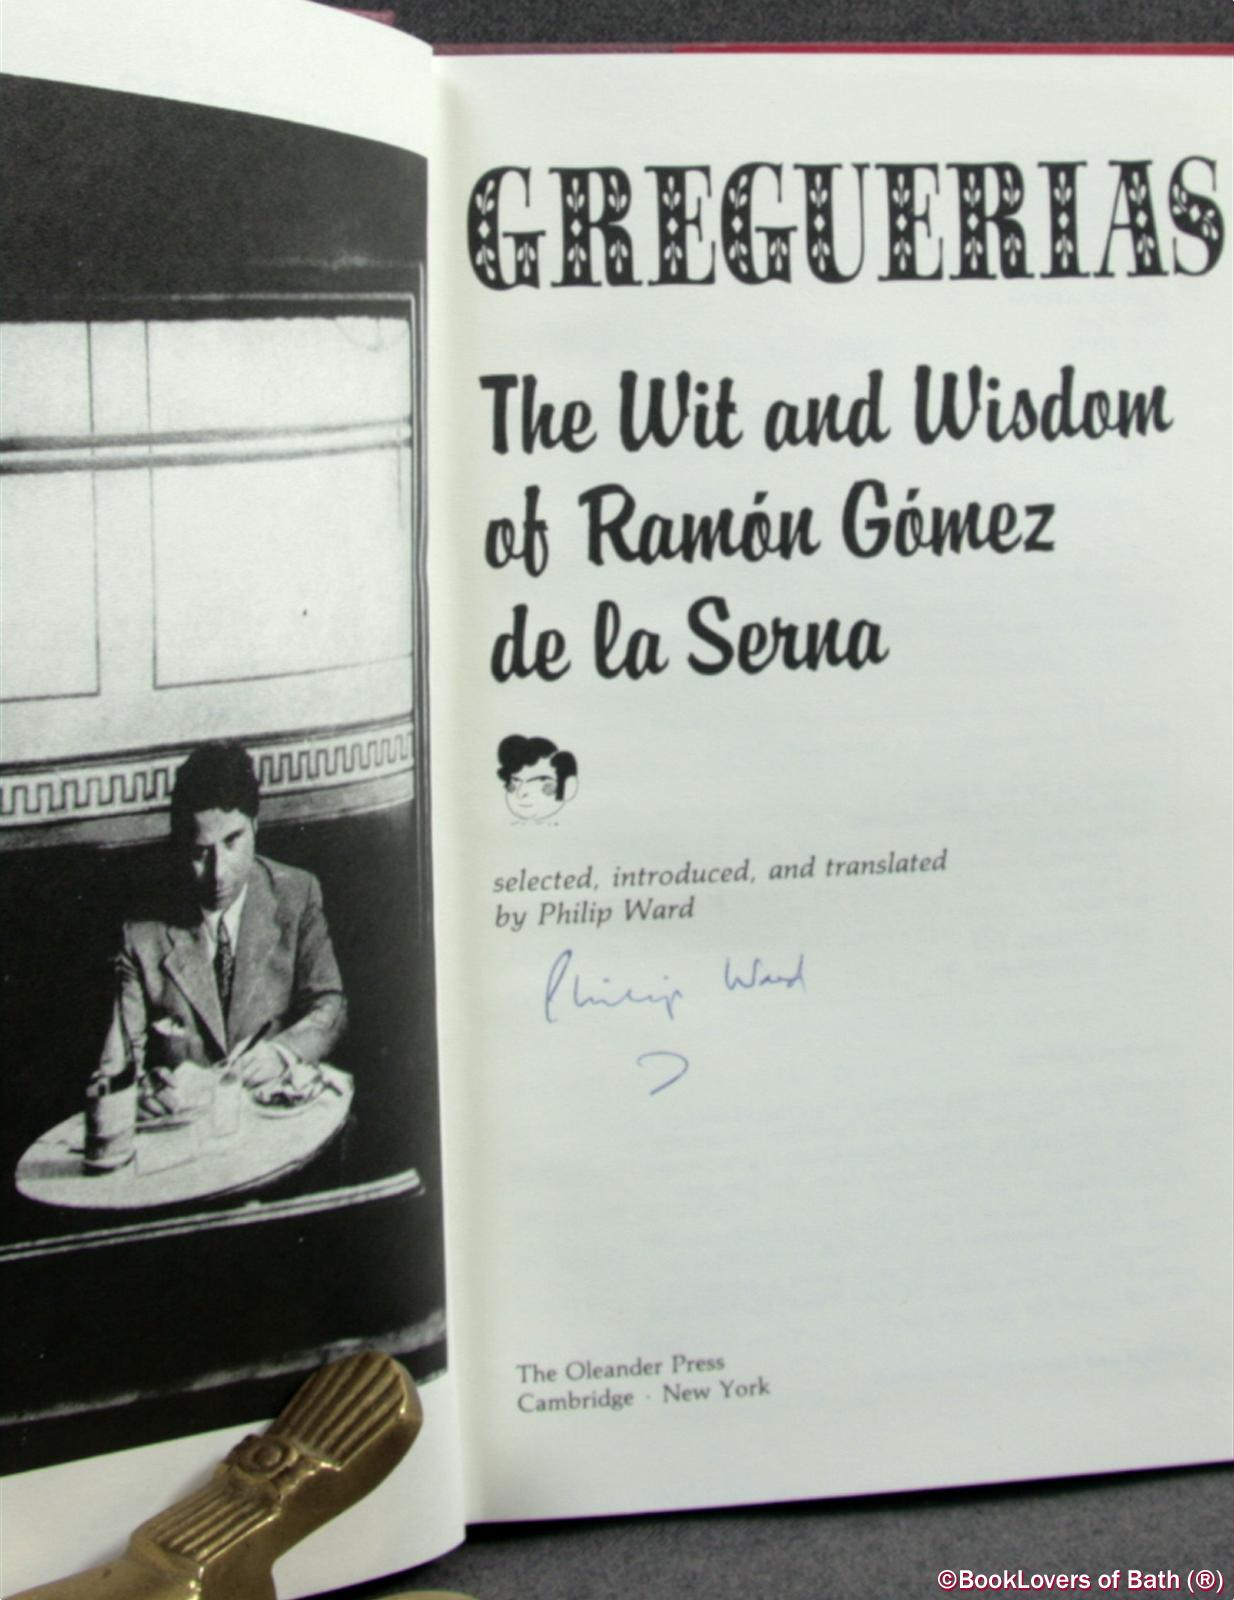 Greguerias: The Wit and Wisdom of Ramon Gomez De La Serna Selected, Introduced, and Translated by Philip Ward - Ramon Gomez De La Serna